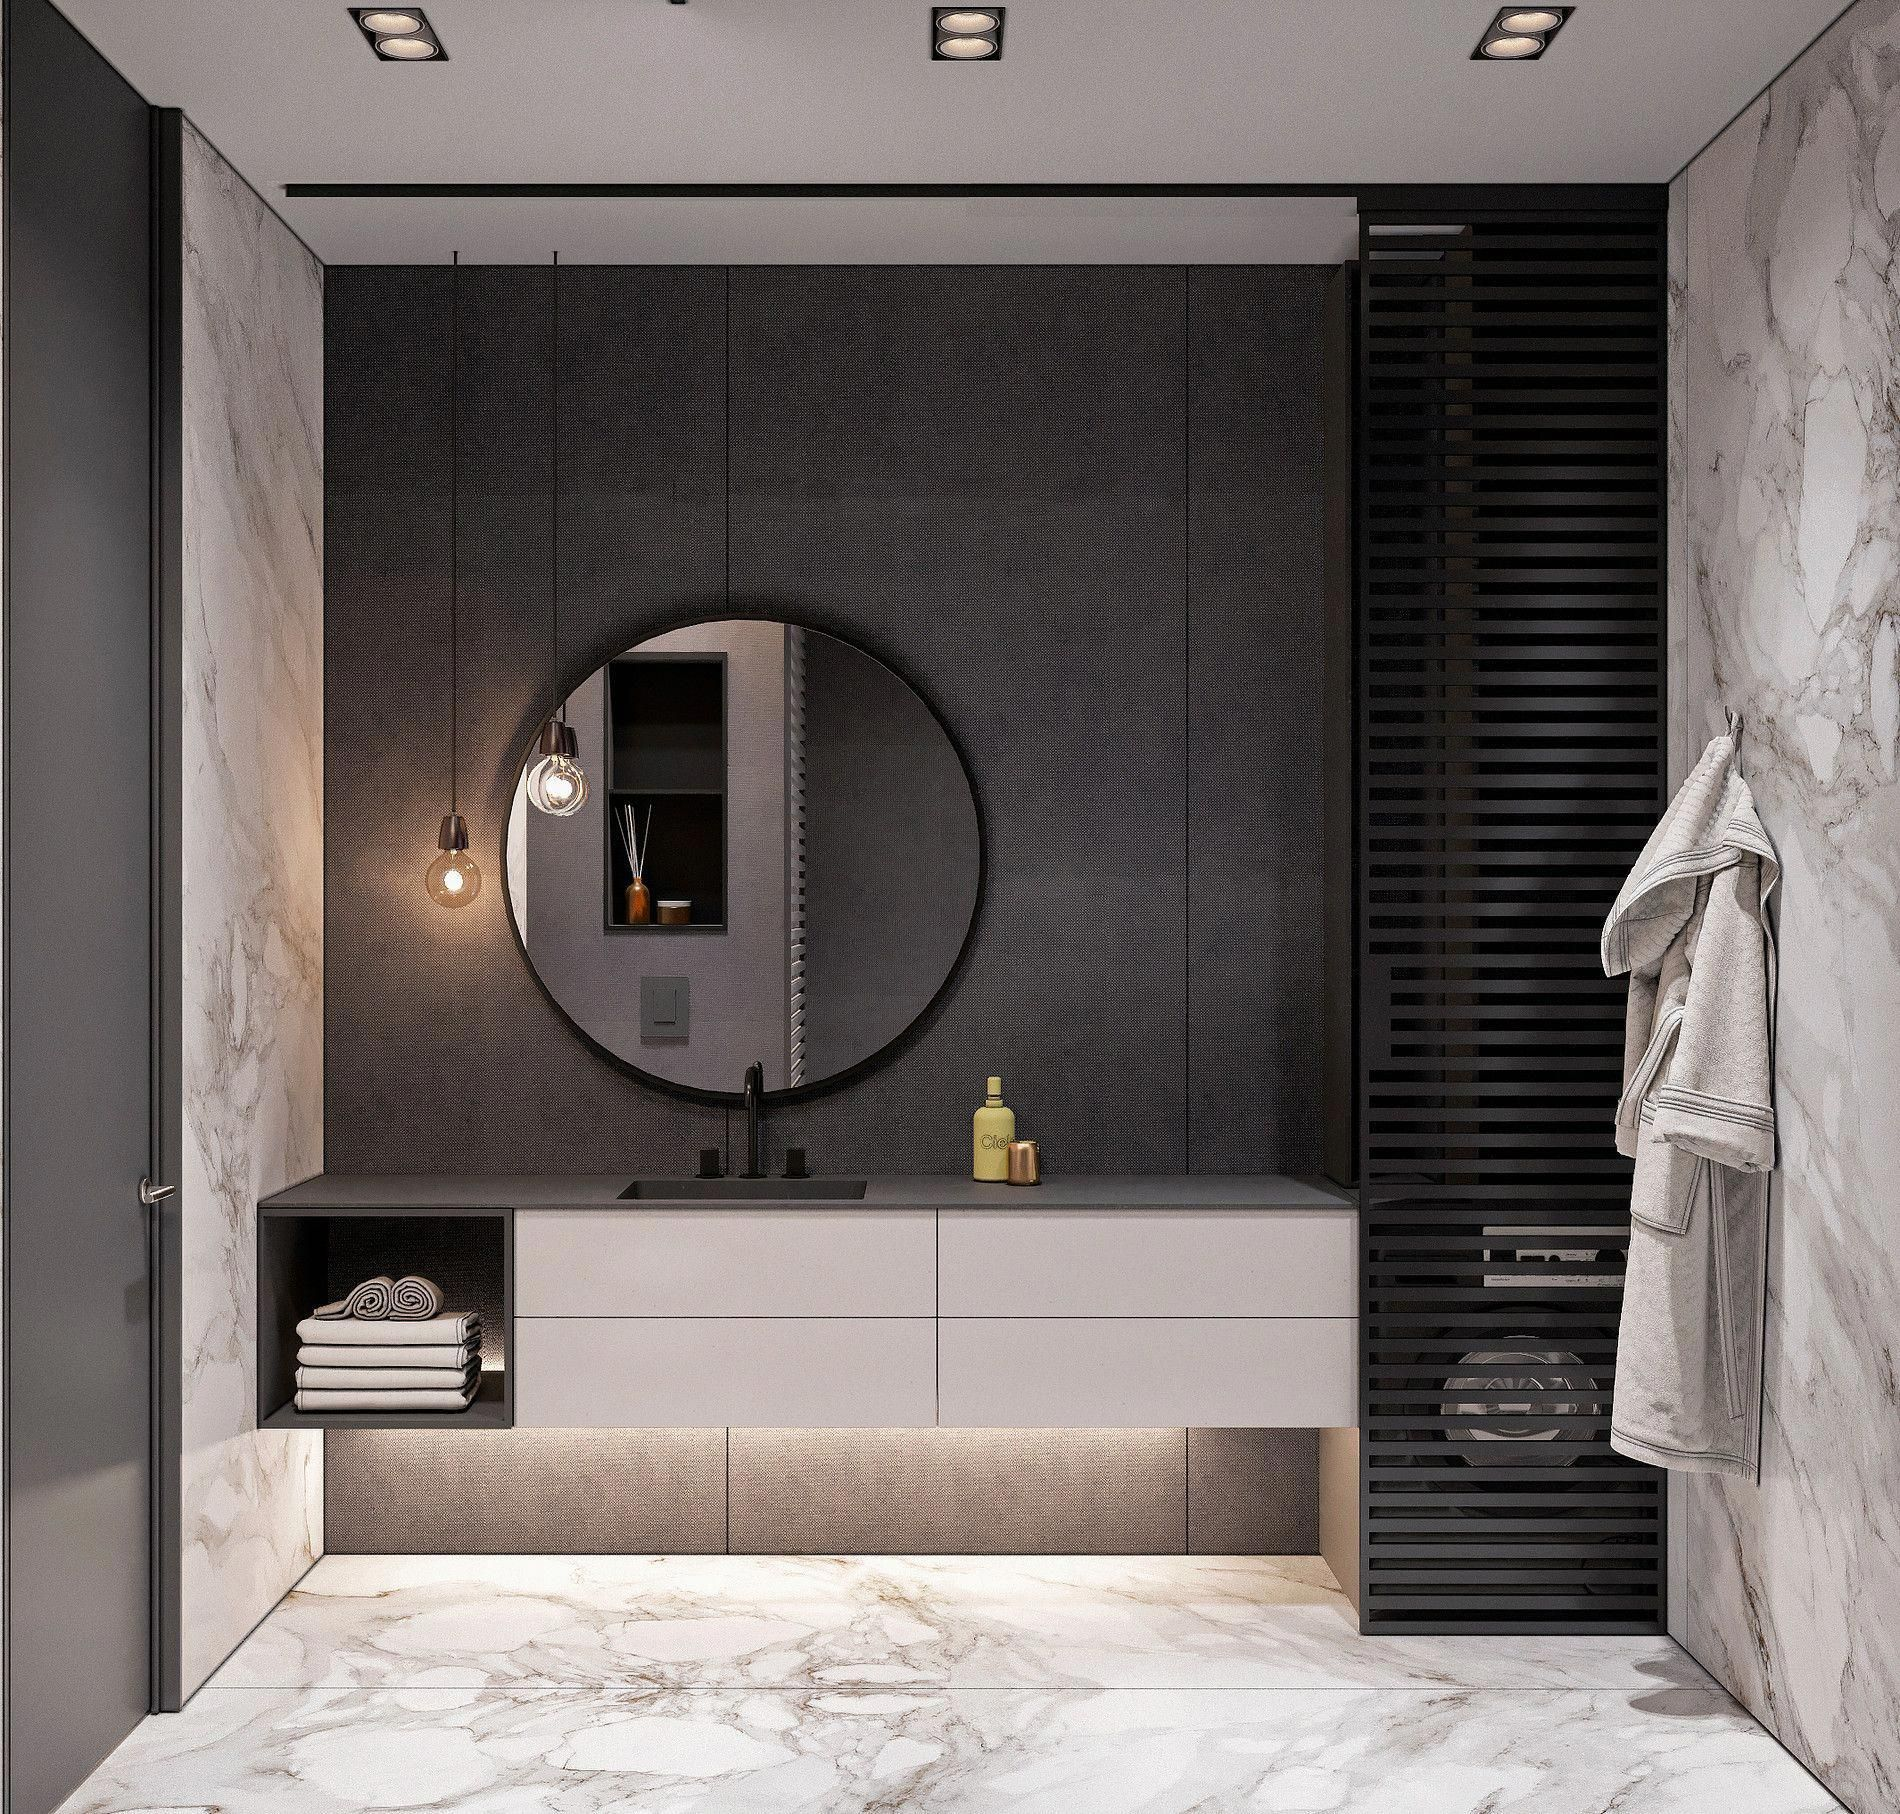 31 Restroom Lighting Concepts For Each